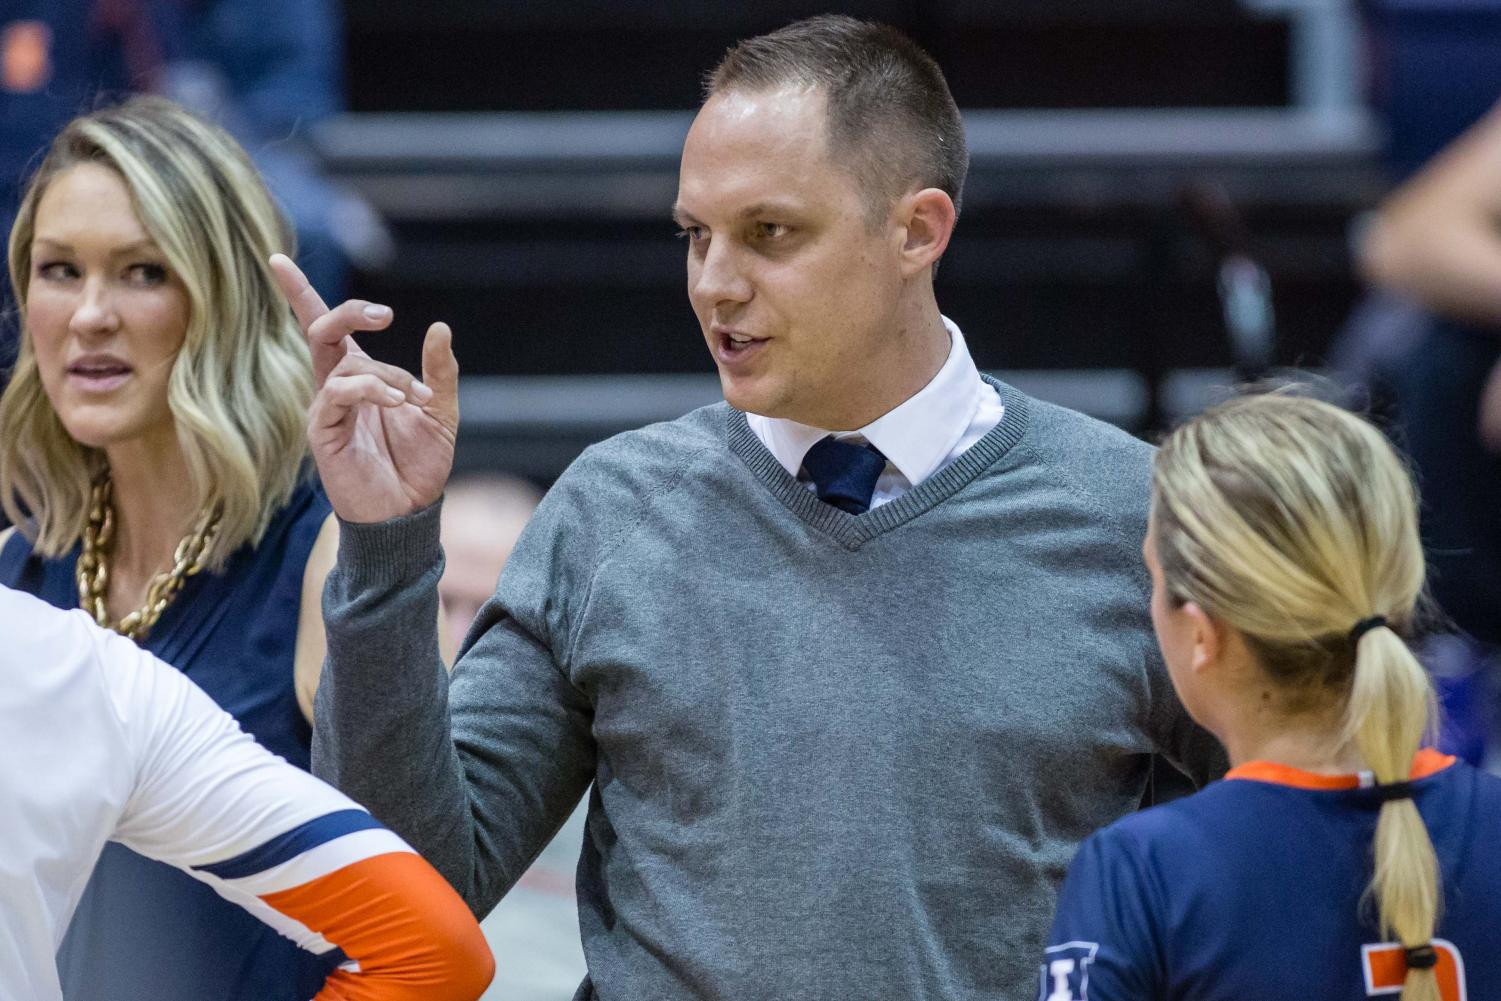 Illinois head coach Chris Tamas talks to his team during a timeout in the match against Michigan at Huff Hall on Saturday, Nov. 5, 2017. The Illini won 3-2.